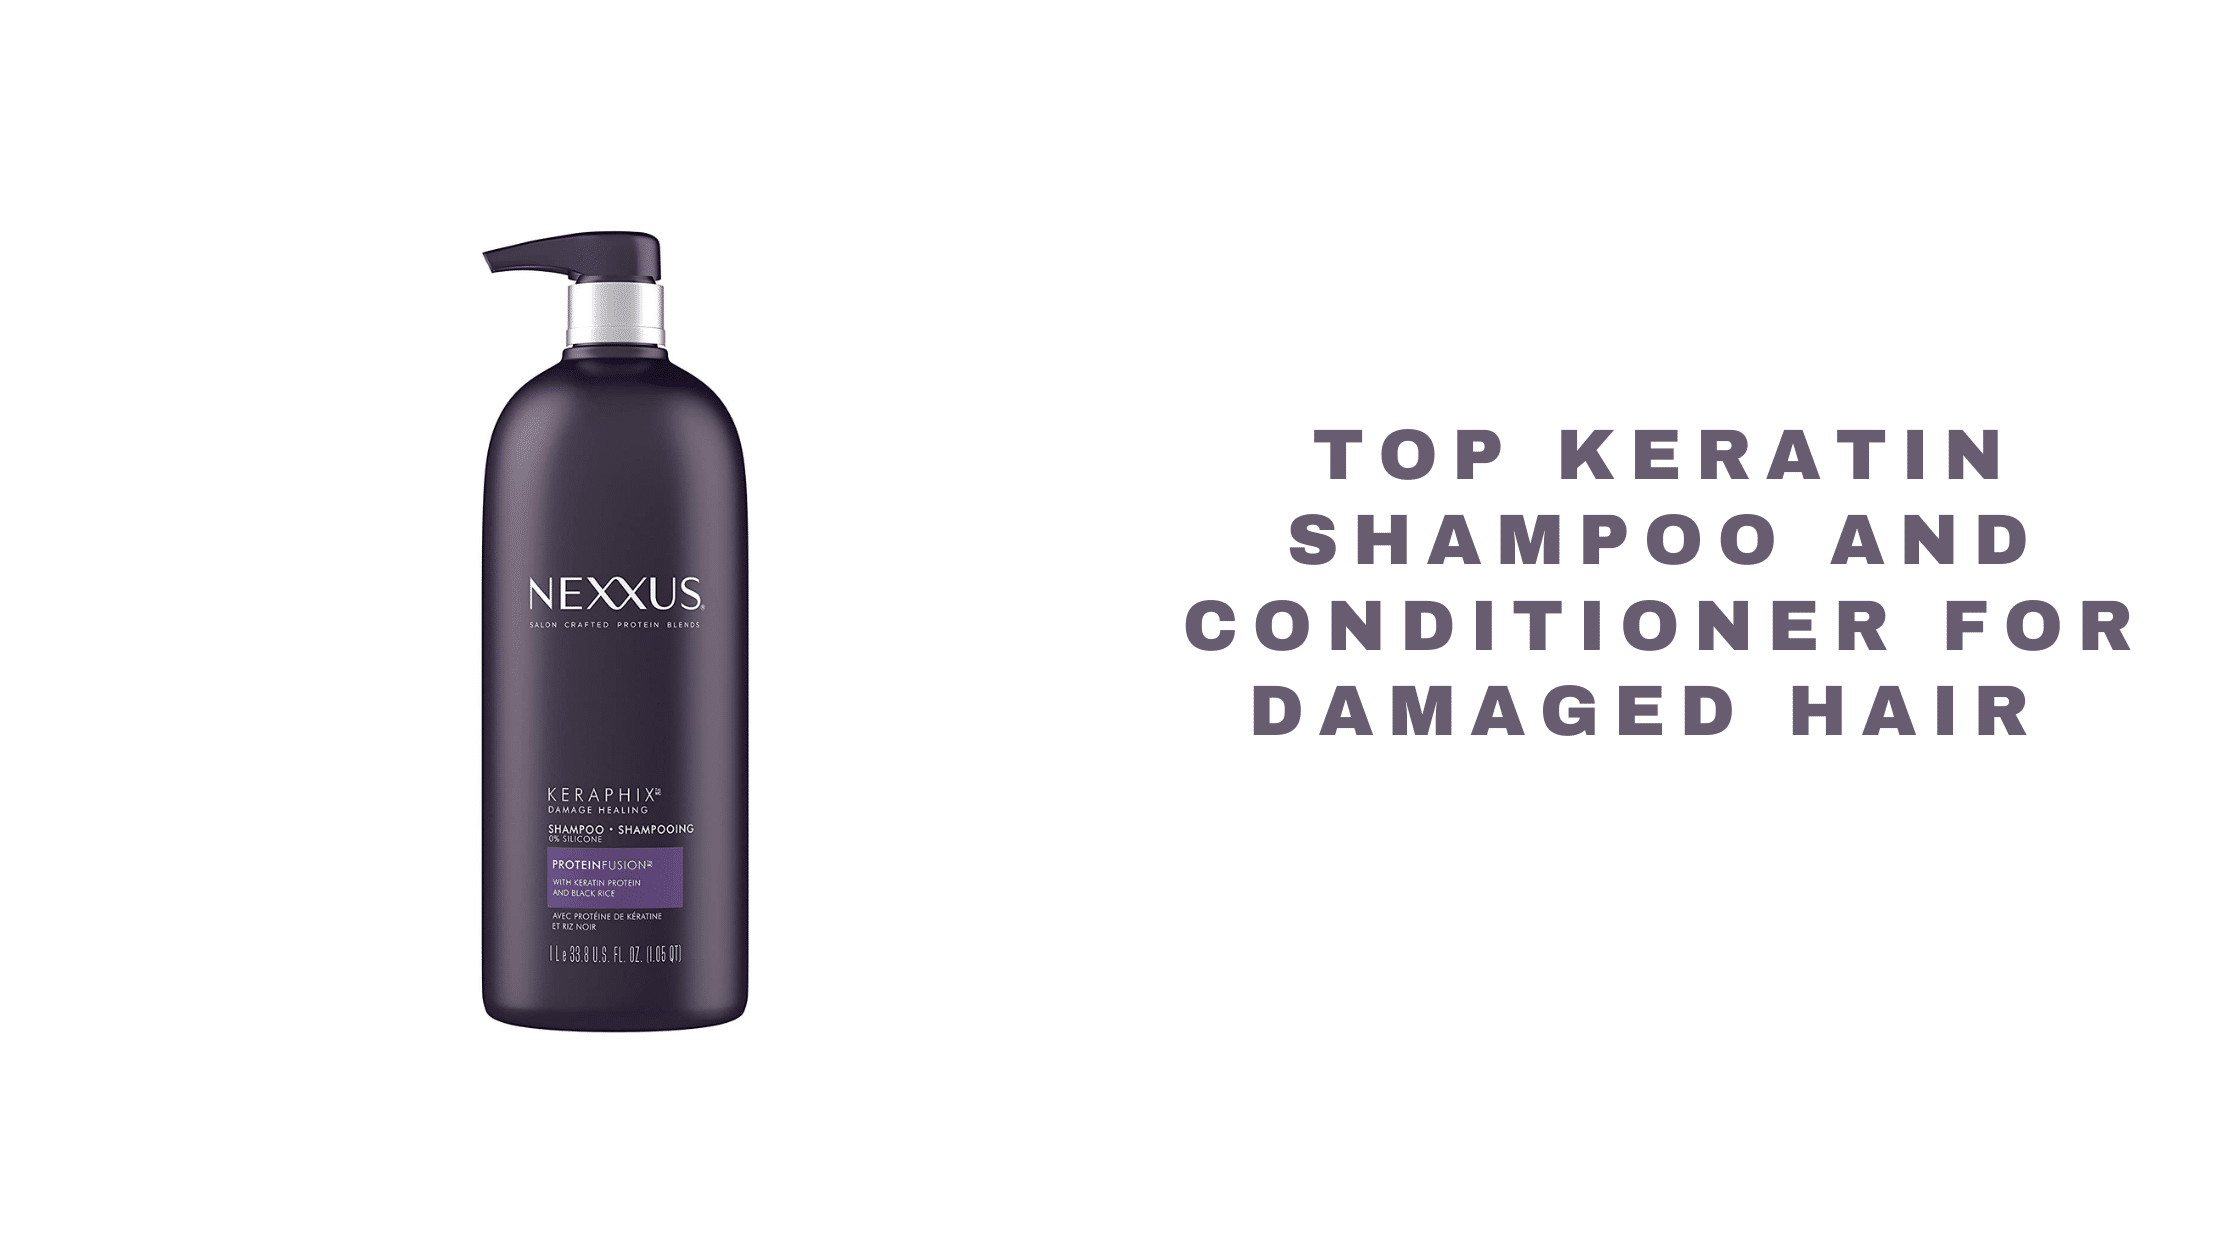 Top Keratin Shampoo and Conditioner For Damaged Hair 2021